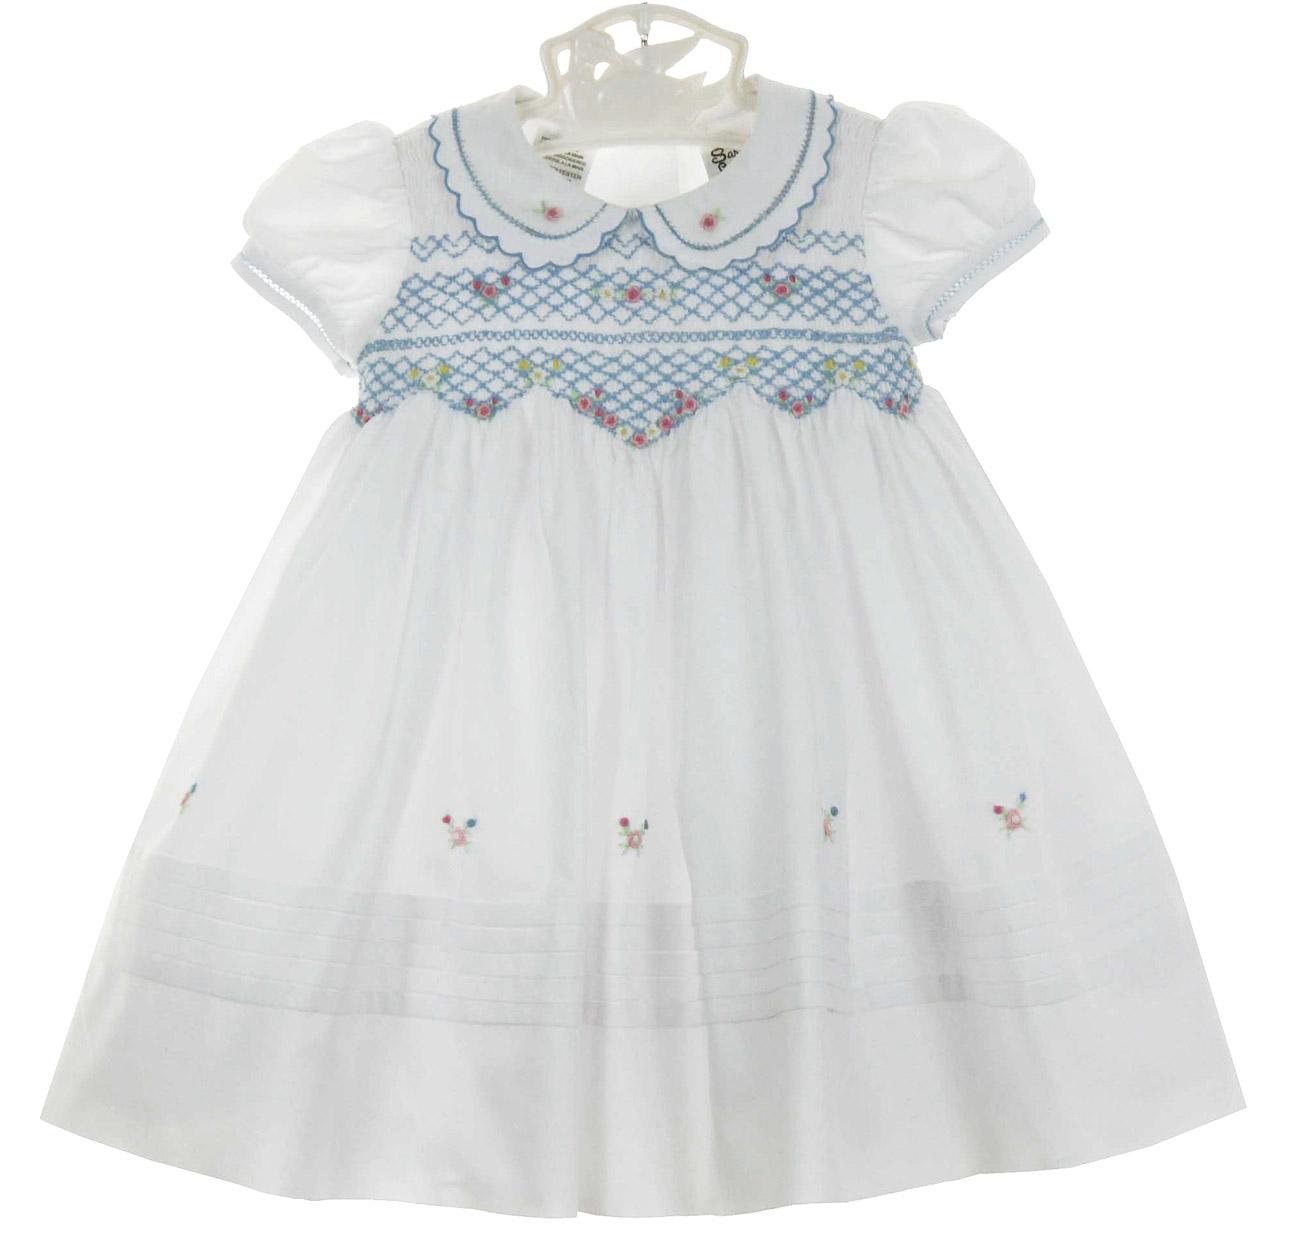 Sarah Louise blue and white smocked dress with embroidered flowers ...